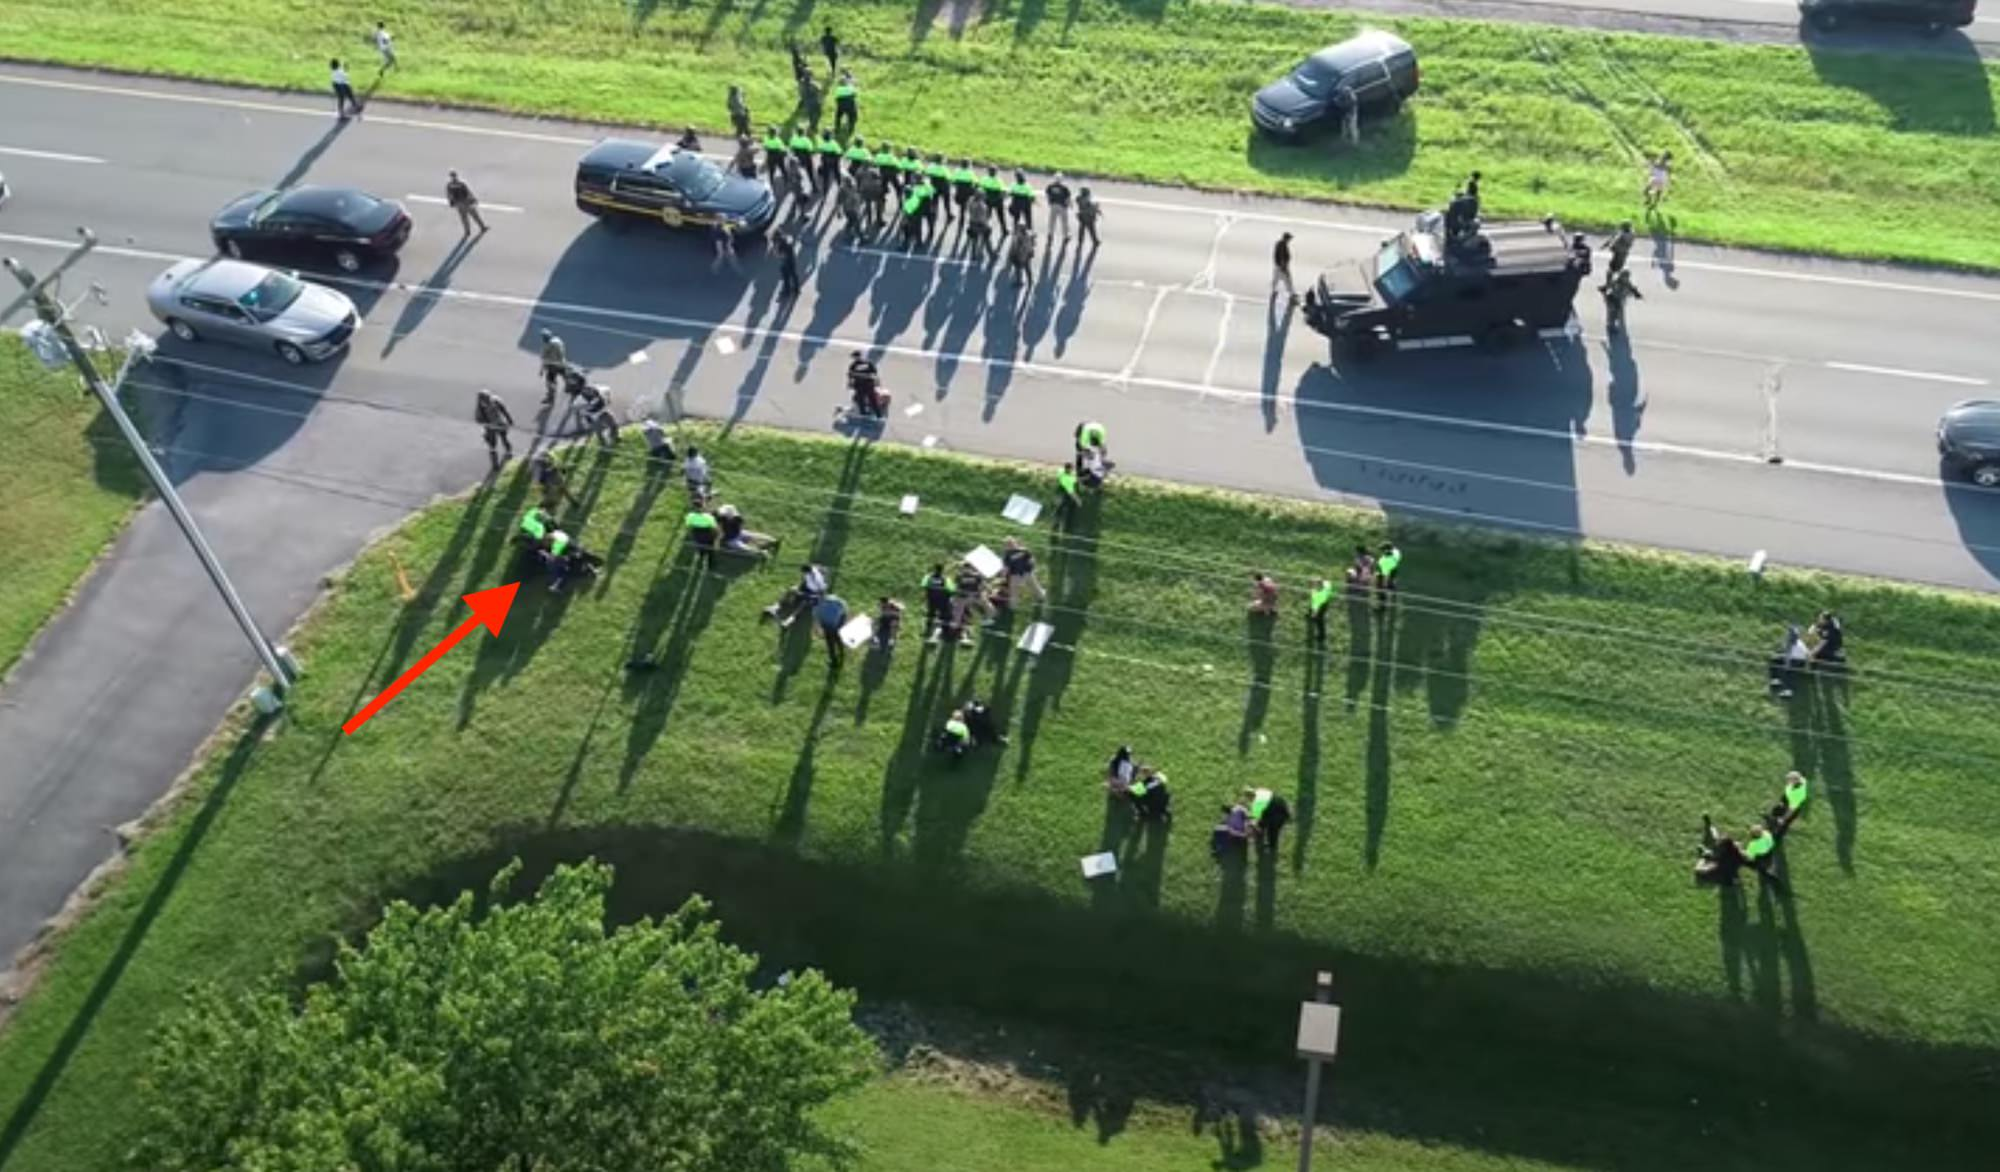 Dover Police Department uses drone video to show arrest journalist in release statement